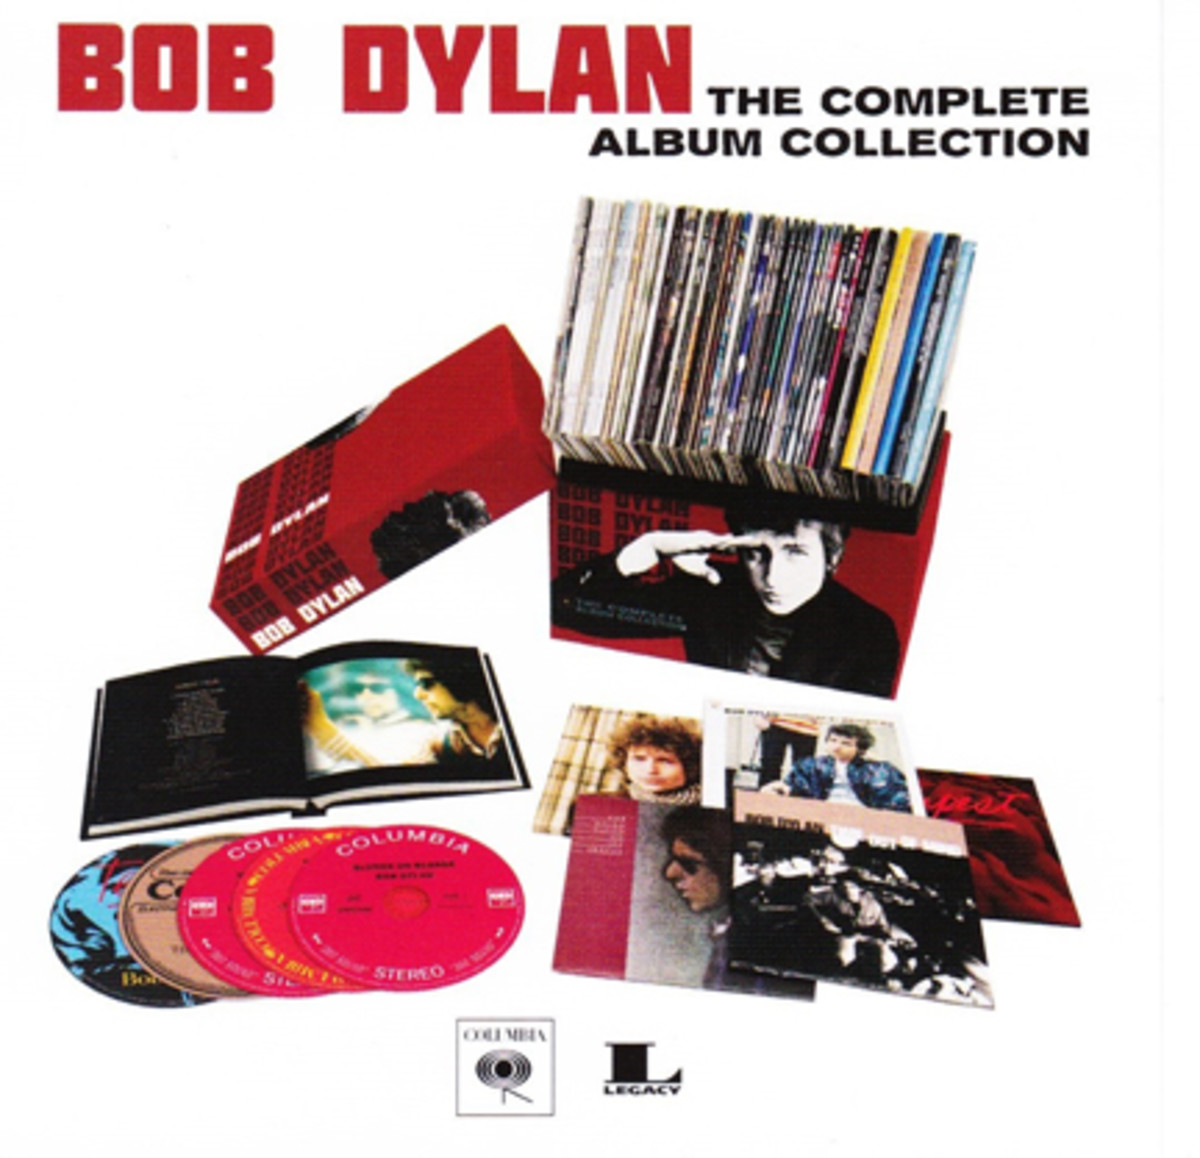 Bob Dylan The Complete Album Collection